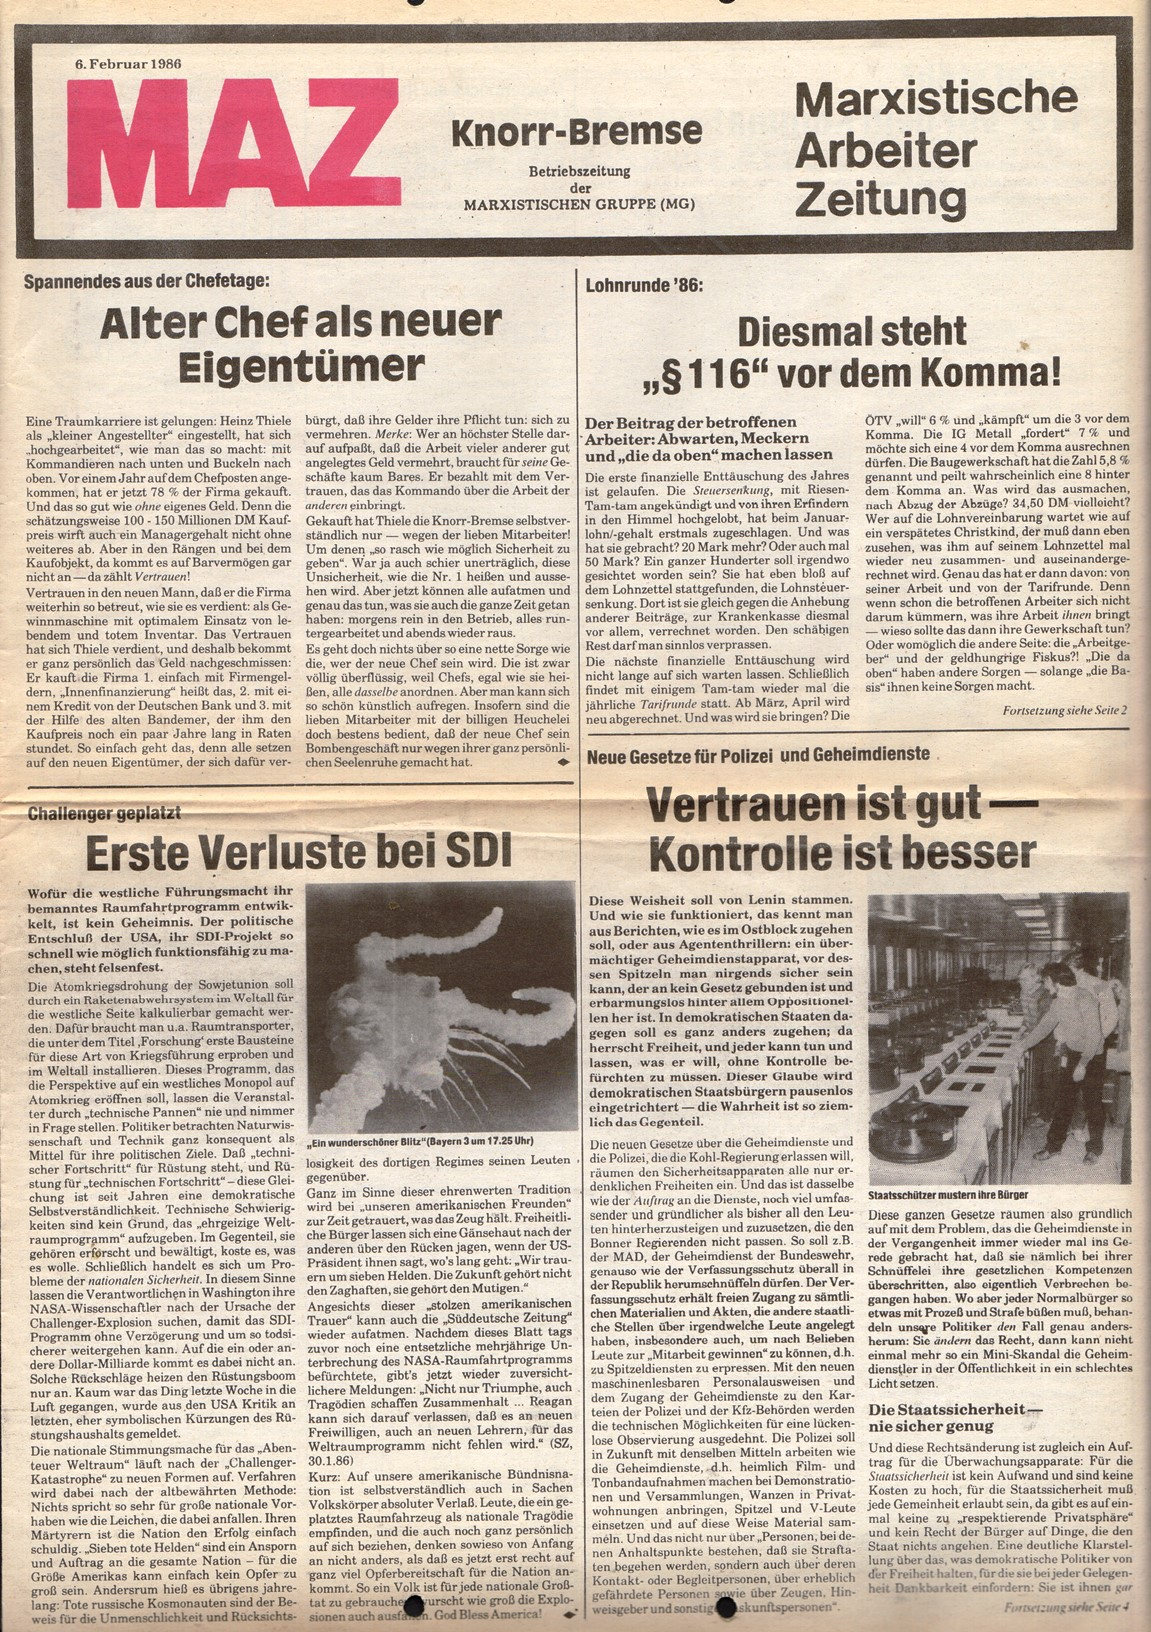 Muenchen_MG_MAZ_Knorr_Bremse_19860206_01